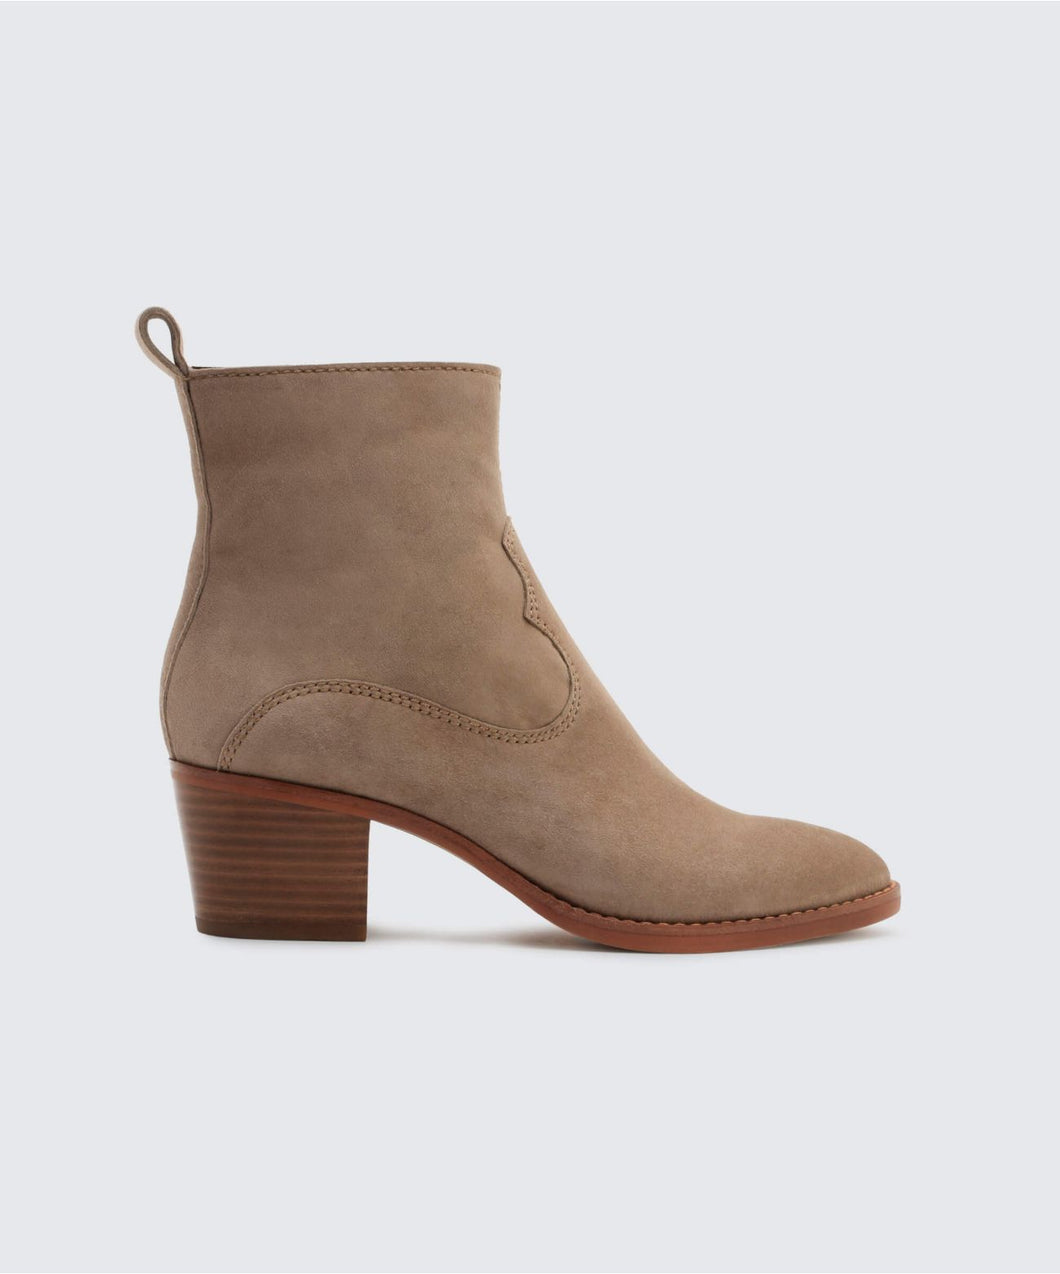 DALISS BOOTIES IN DK TAUPE -   Dolce Vita